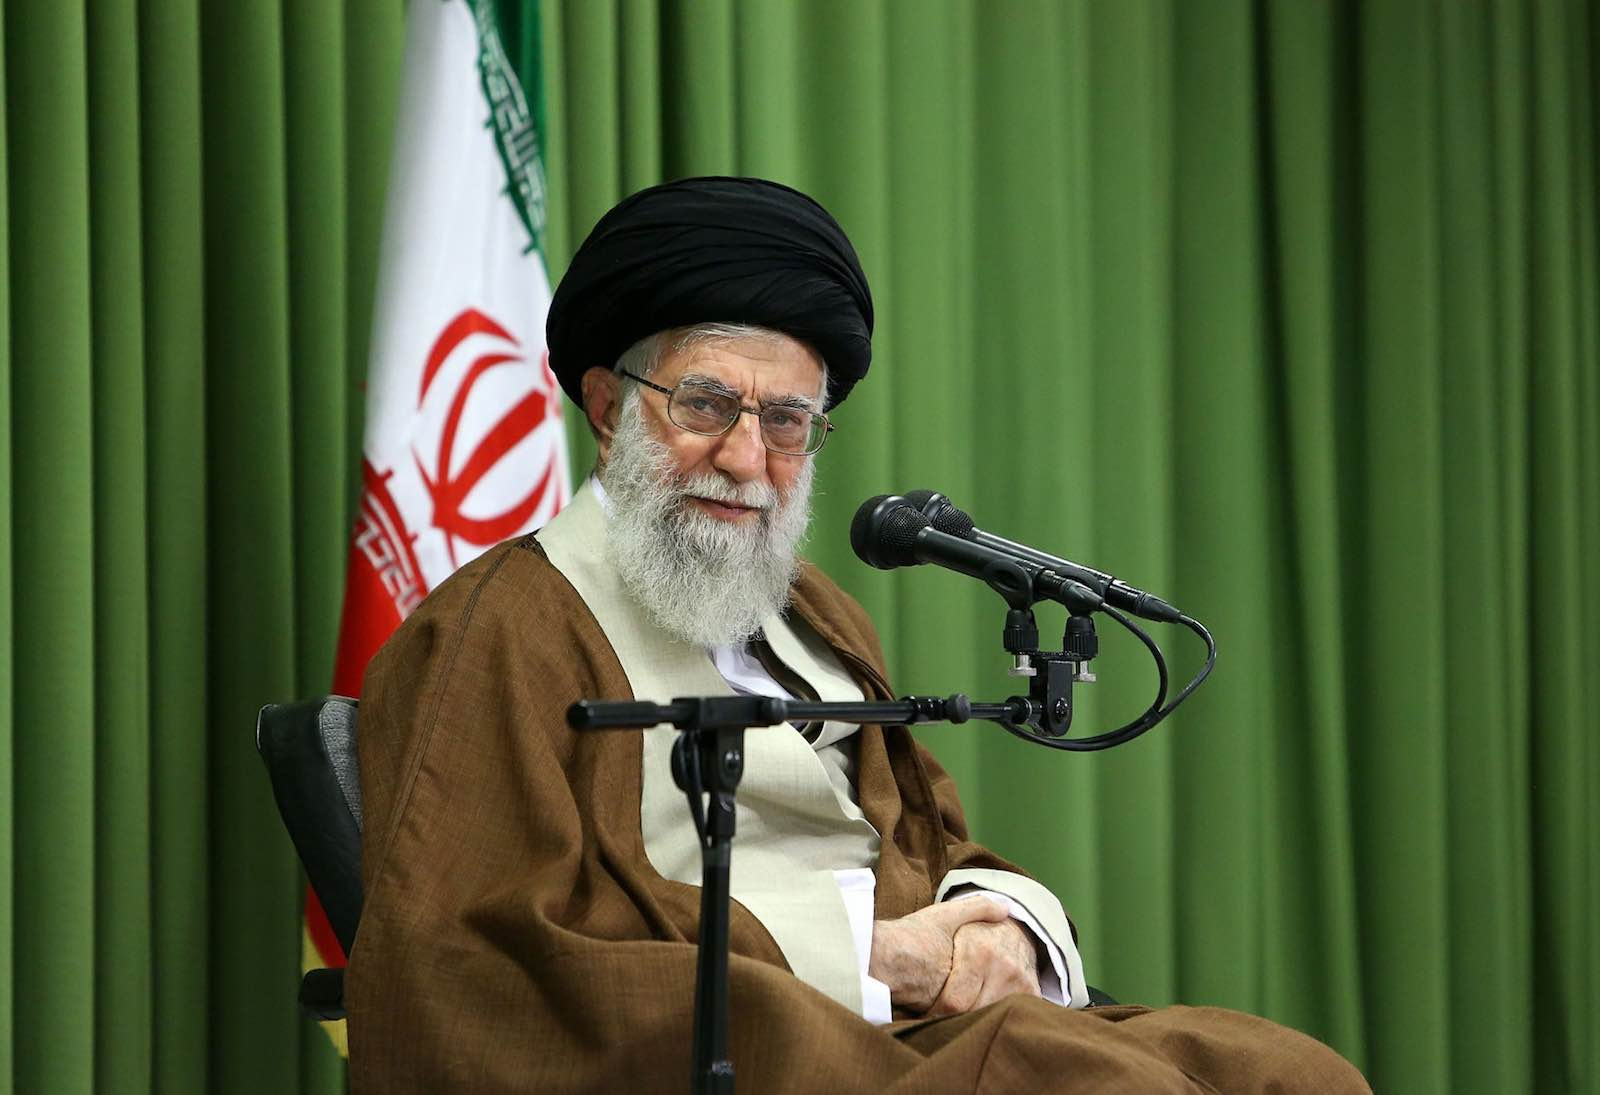 Khamenei and the IRGC have a history of disrupting efforts at rapprochement (Photo: Iranian Leader's Press Office via Getty Images)